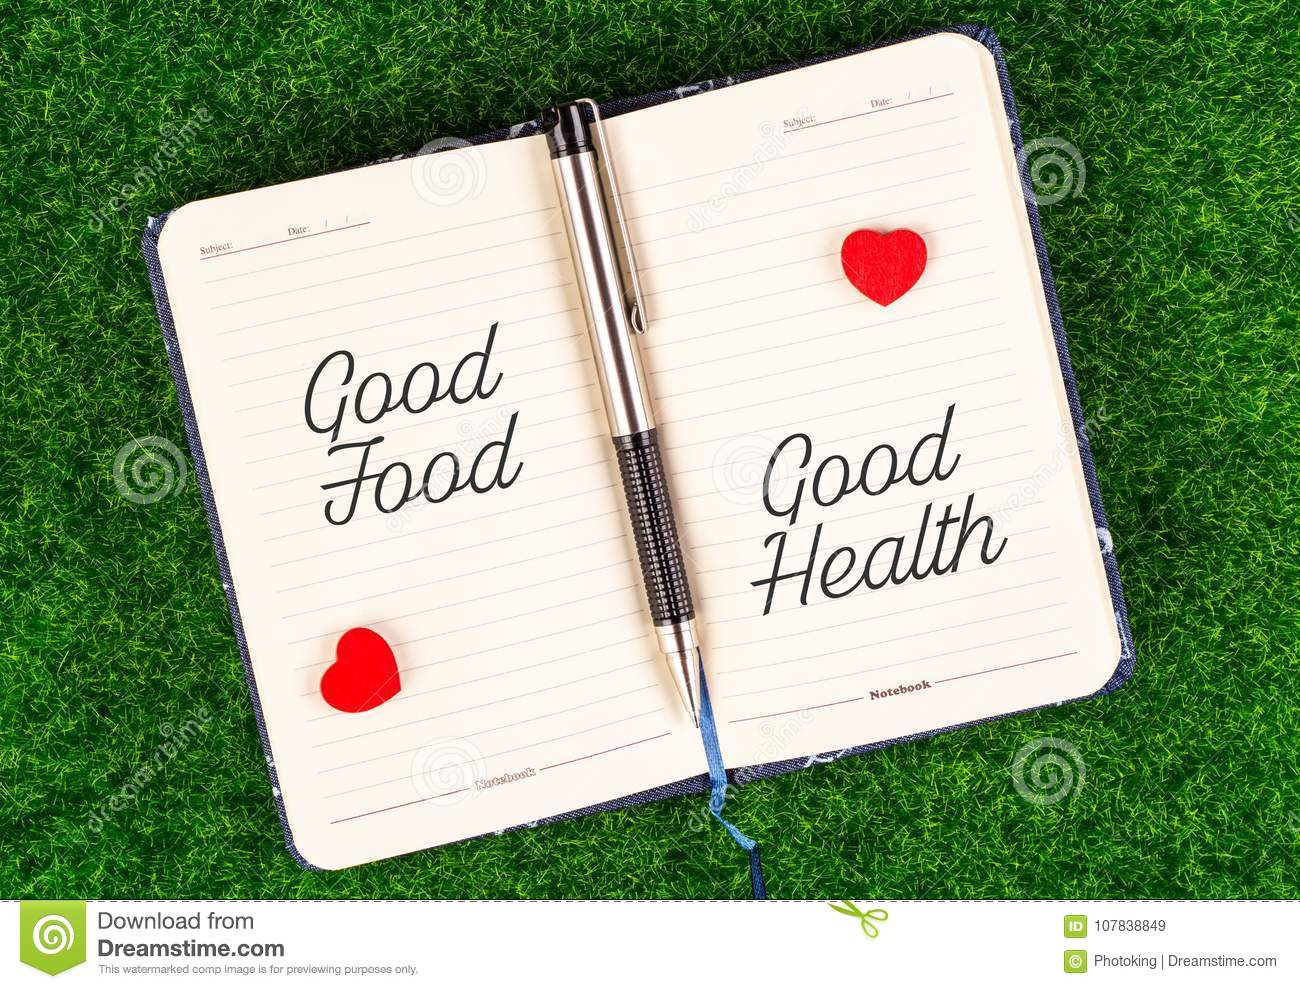 Good food equal good health